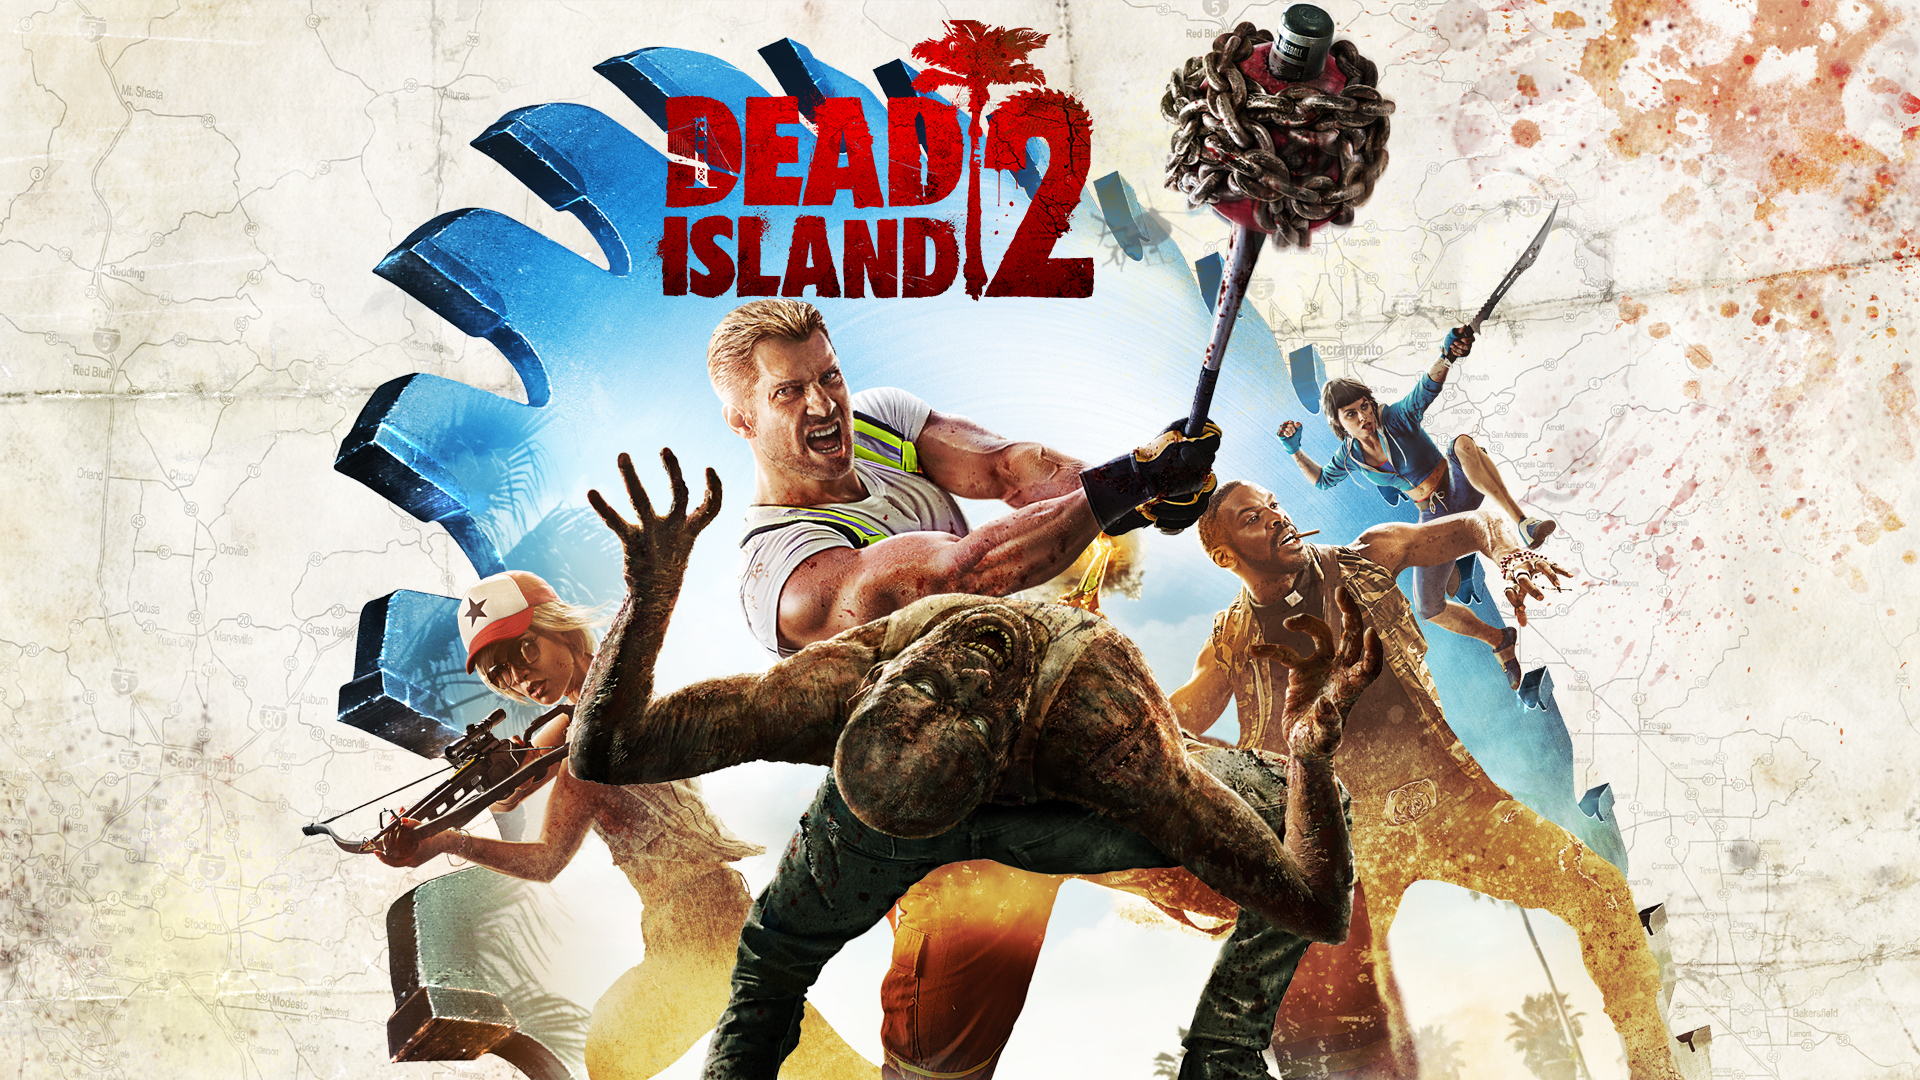 Dead island 2 wallpapers images photos pictures backgrounds dead island 2 screenshots voltagebd Choice Image